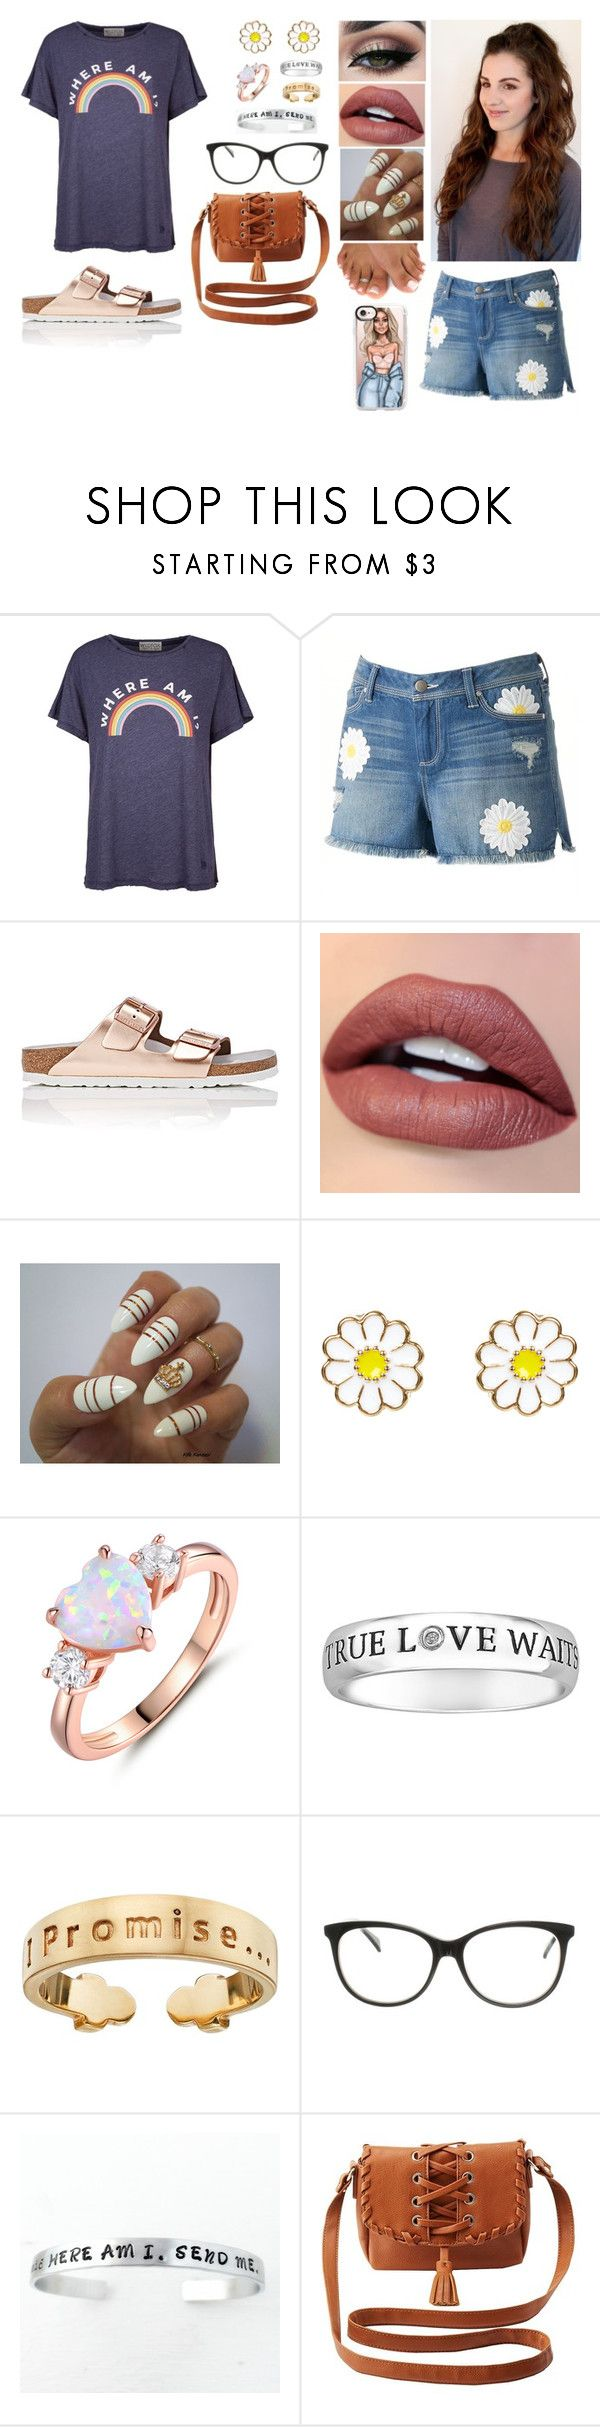 """""""Where Am I?"""" by divinemaboundou ❤ liked on Polyvore featuring Wildfox, LC Lauren Conrad, Birkenstock, Tiger Mist, Monsoon, Peermont, I Promise by Karen R., Just Cavalli, Charlotte Russe and Casetify"""